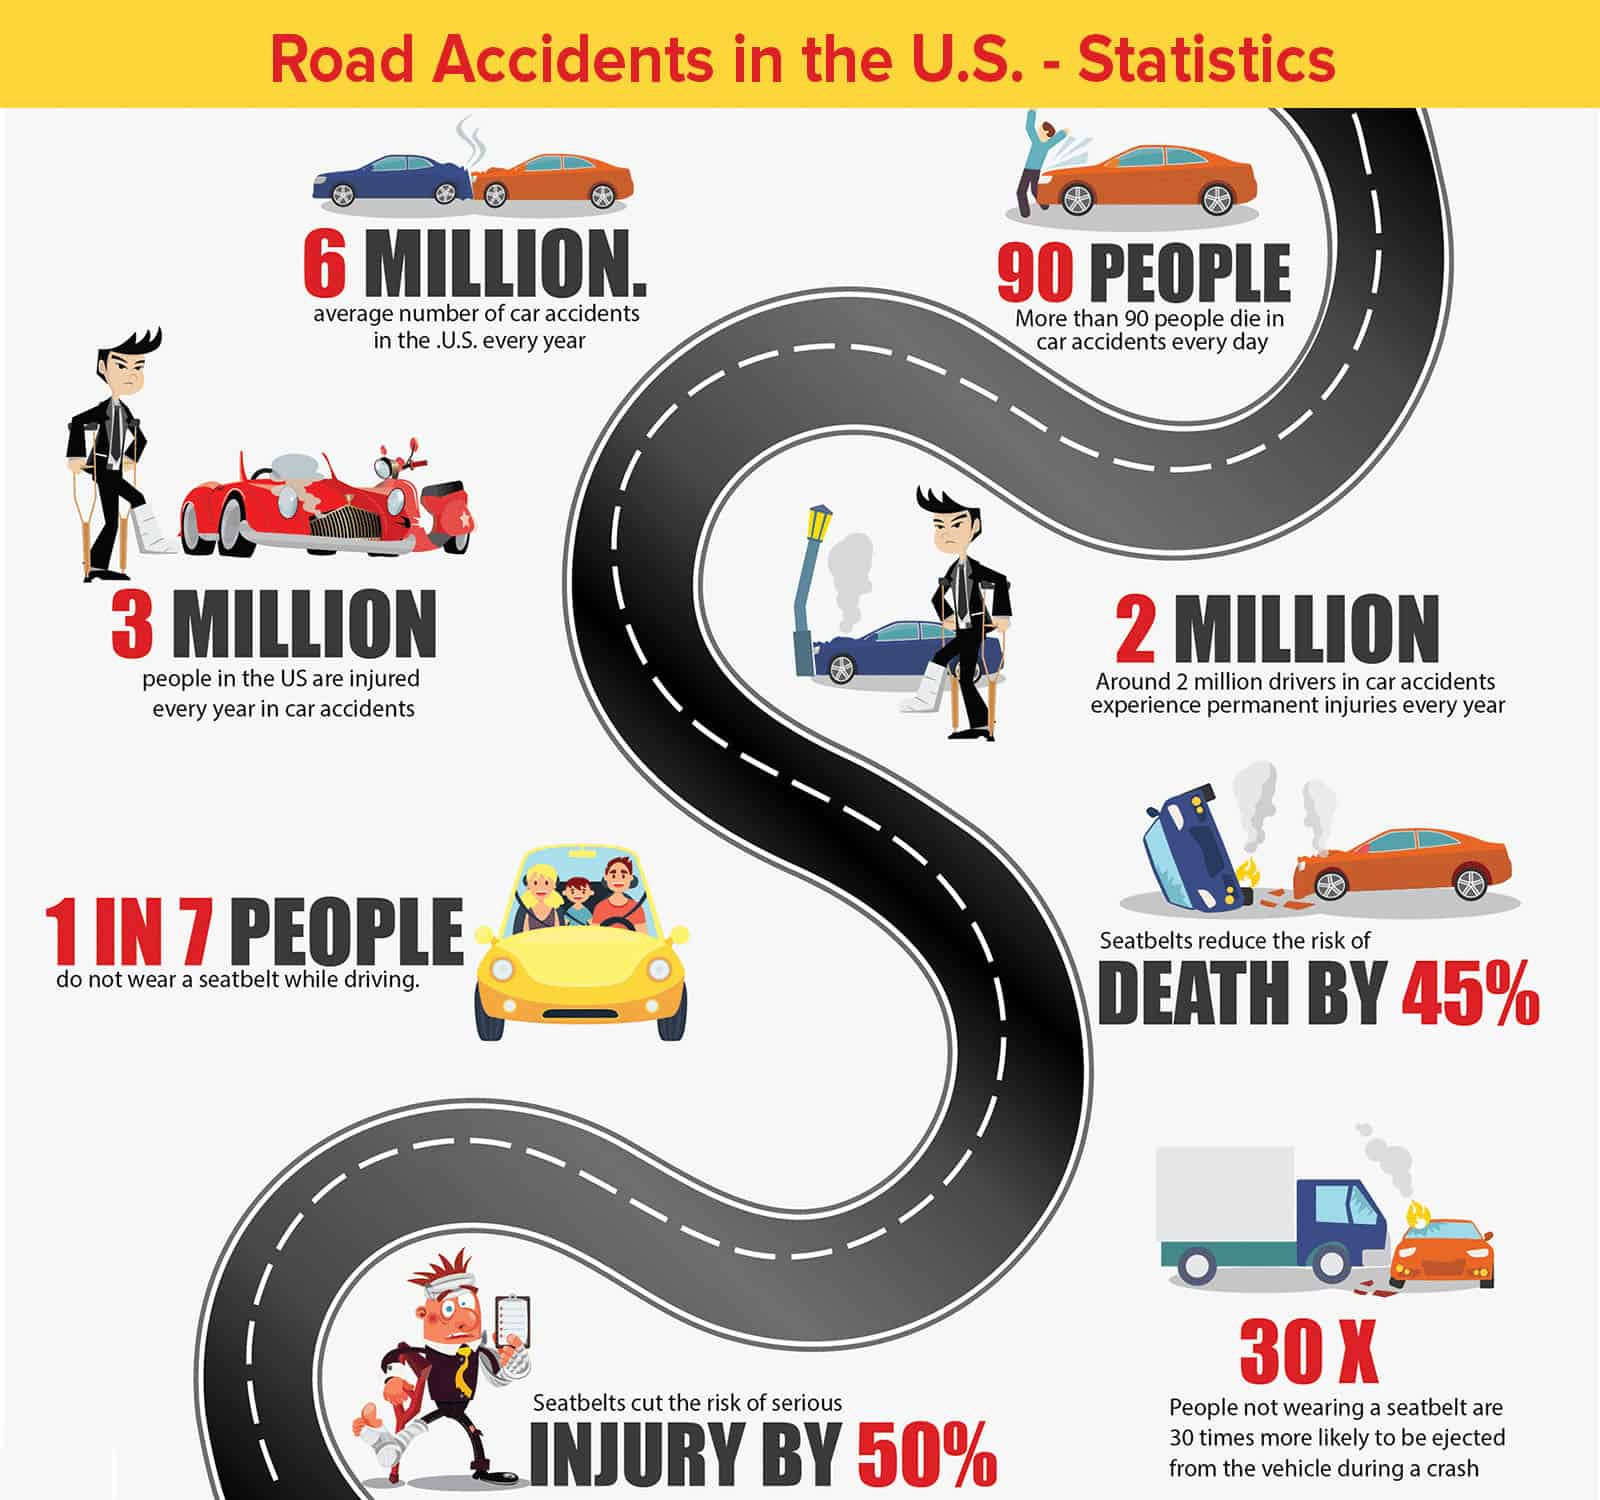 Road Accidents in the U.S. - Statistics